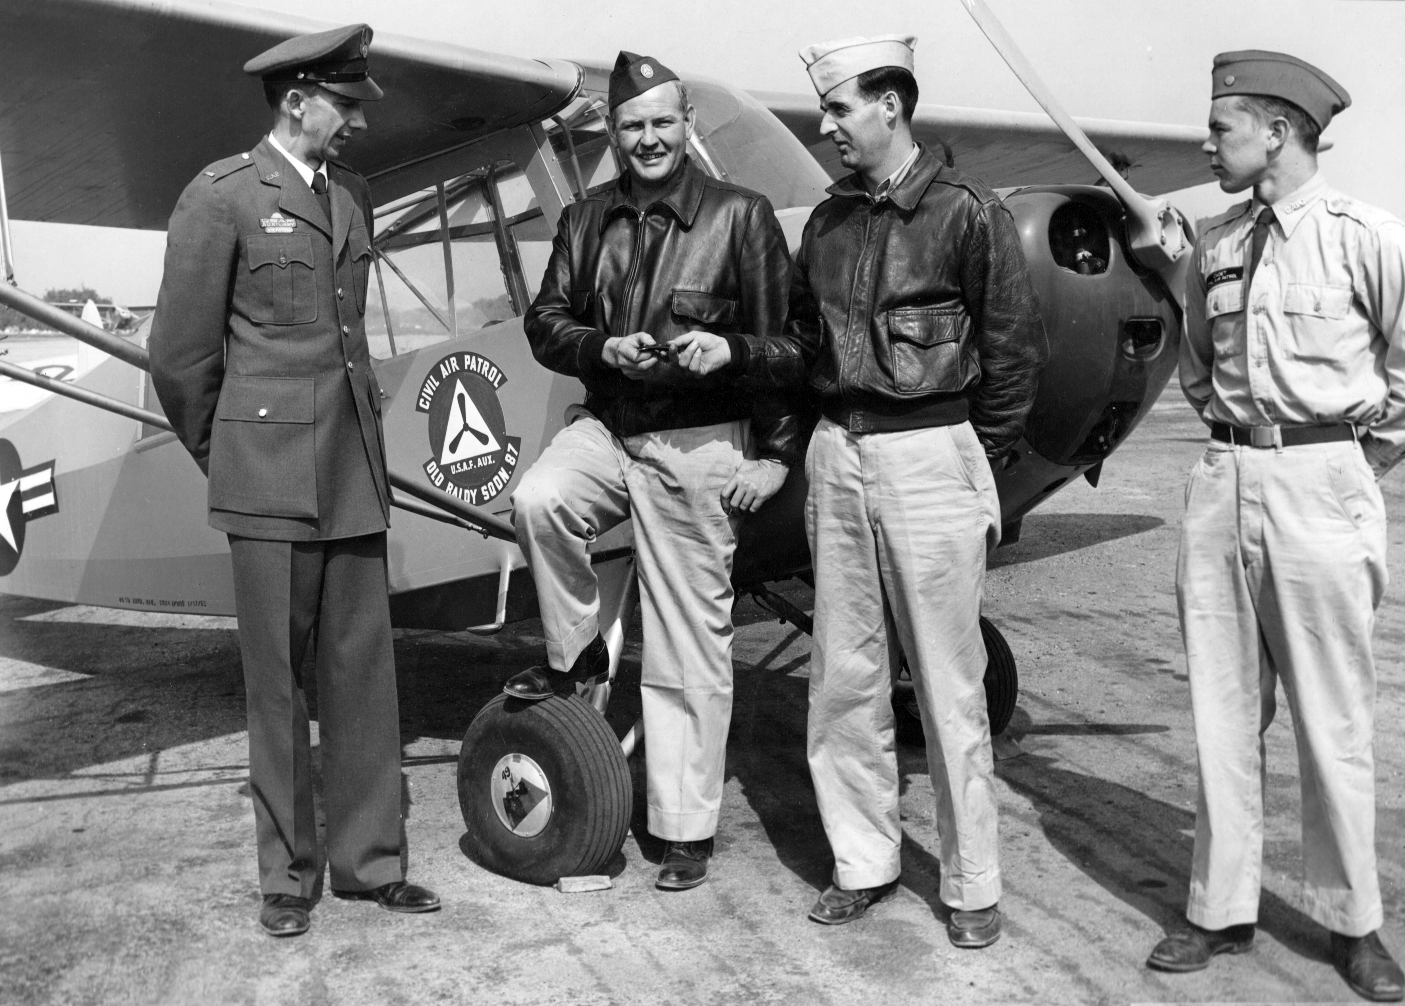 Squadron members in front of the newly issued L-16